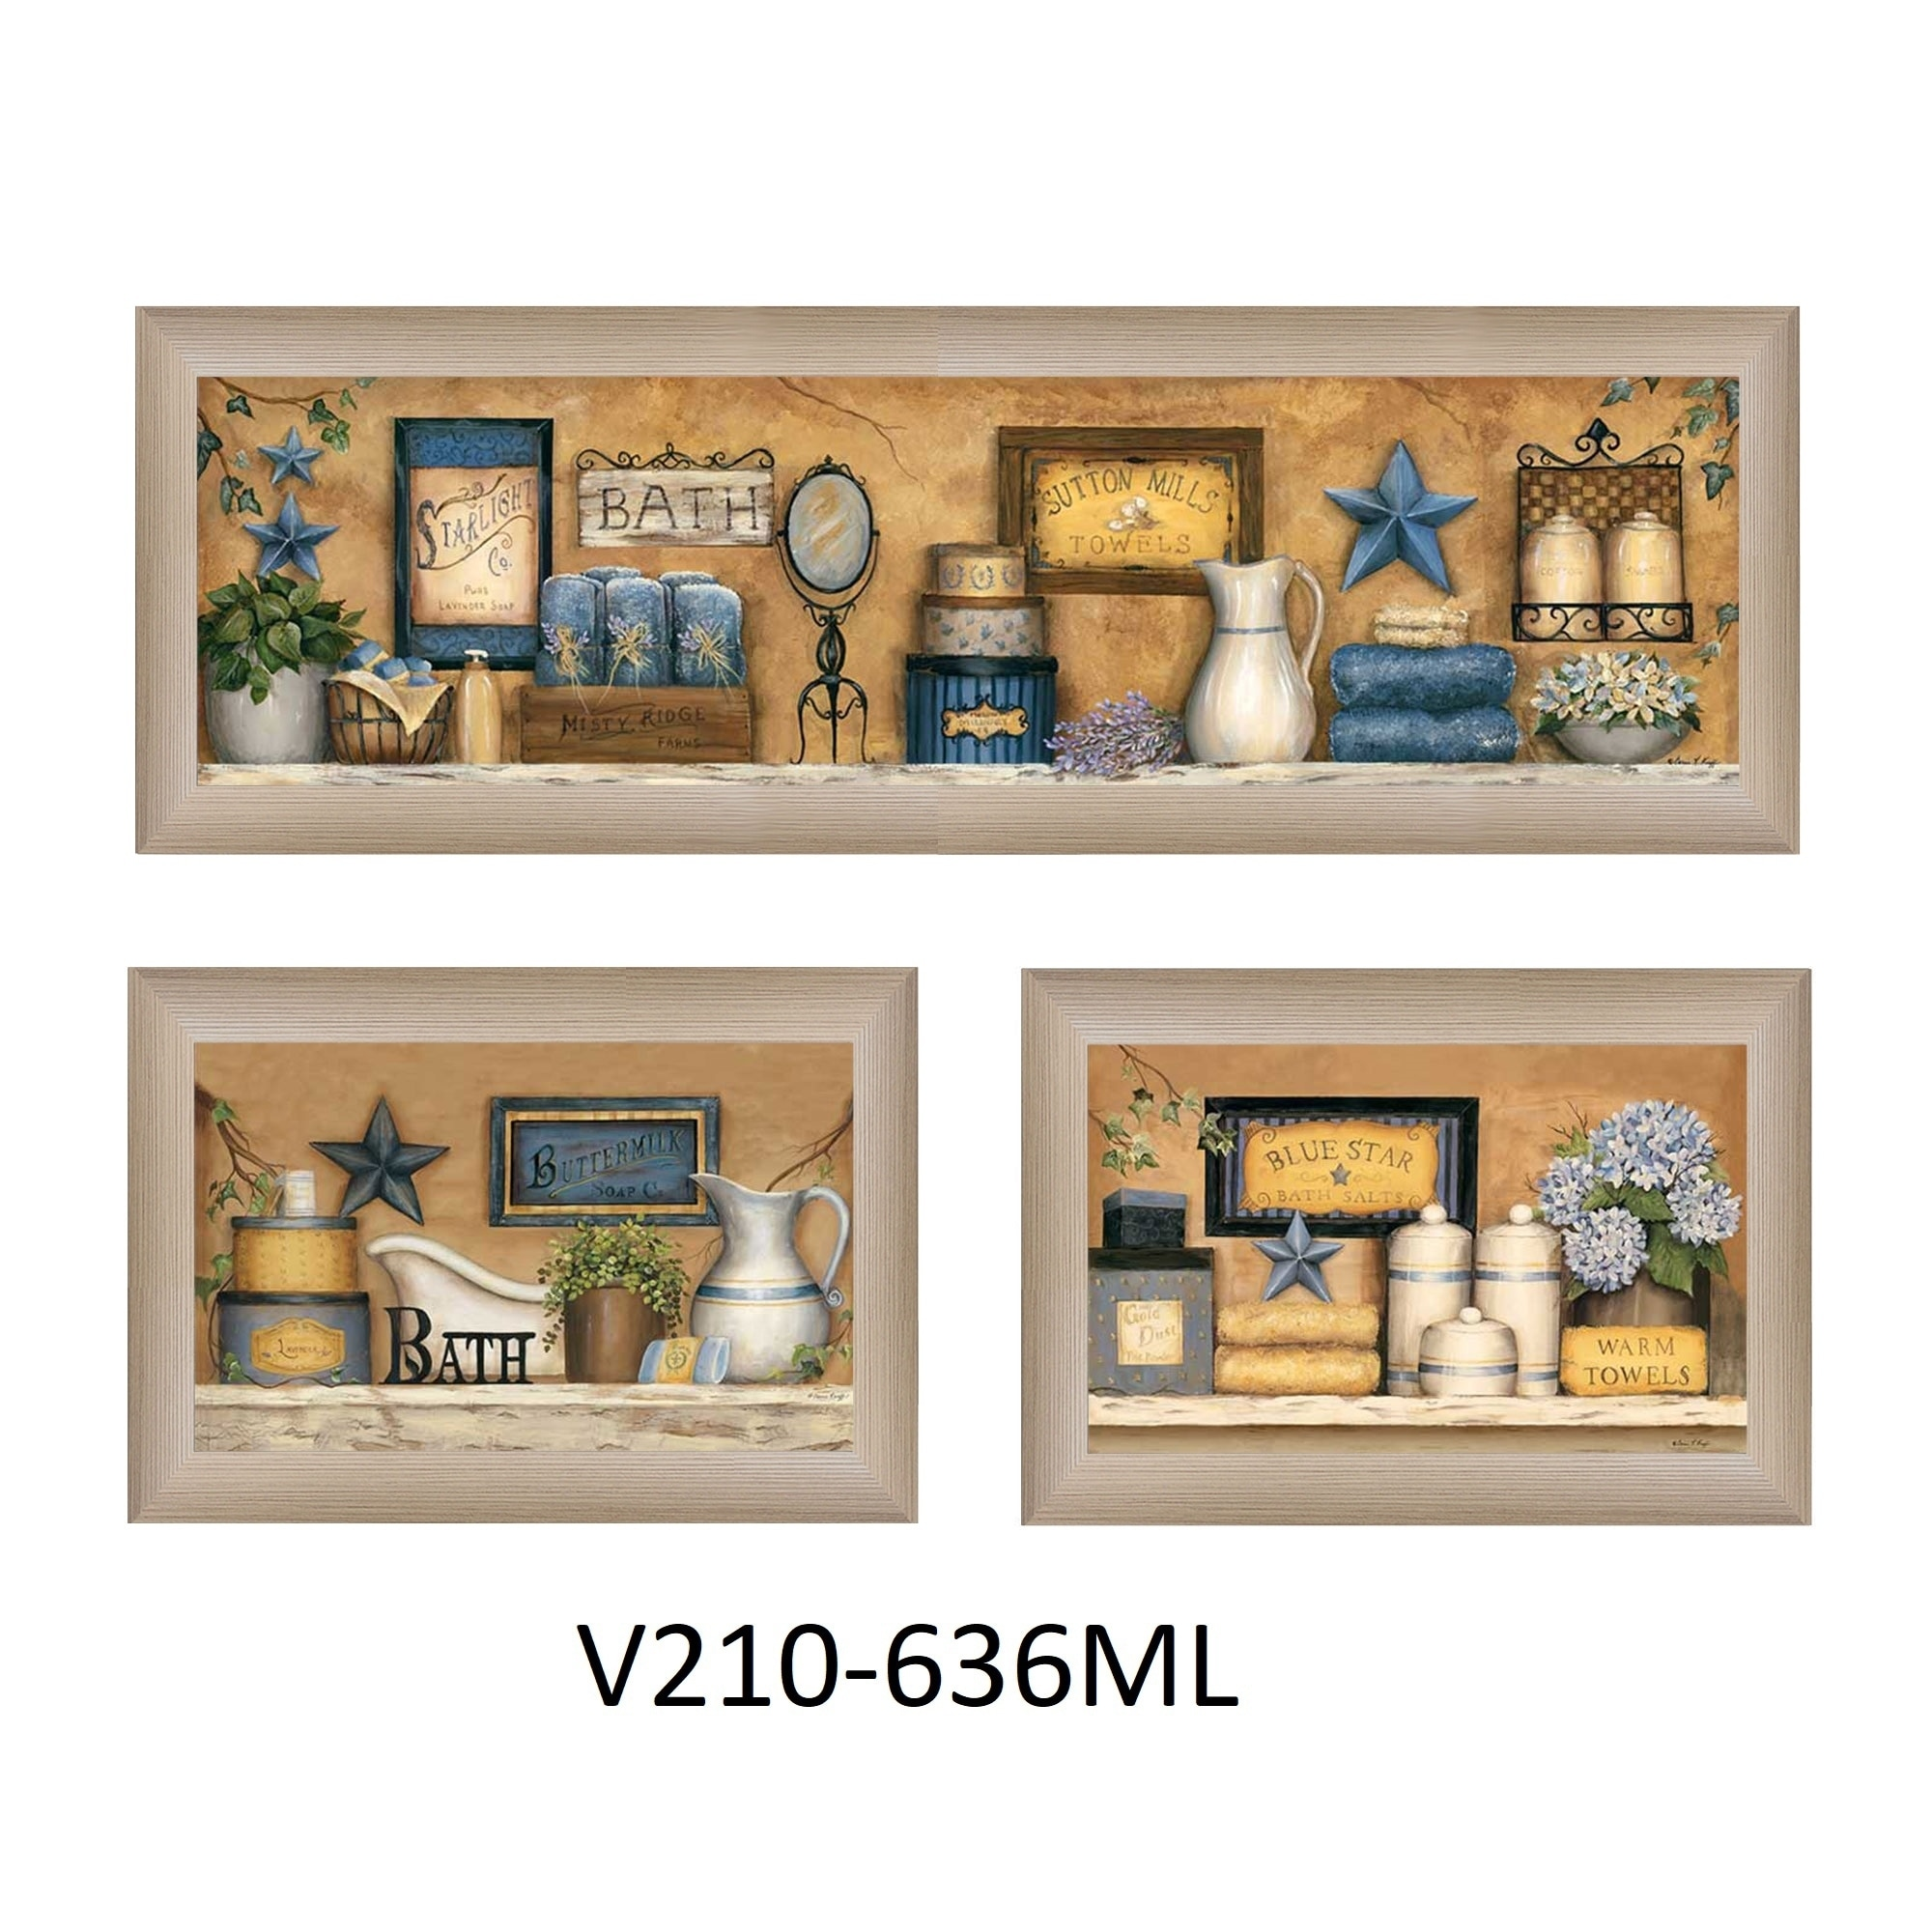 Bathroom Collection Iii Collection By Carrie Knoff Printed Wall Art Ready To Hang Framed Poster Beige Frame On Sale Overstock 18220844